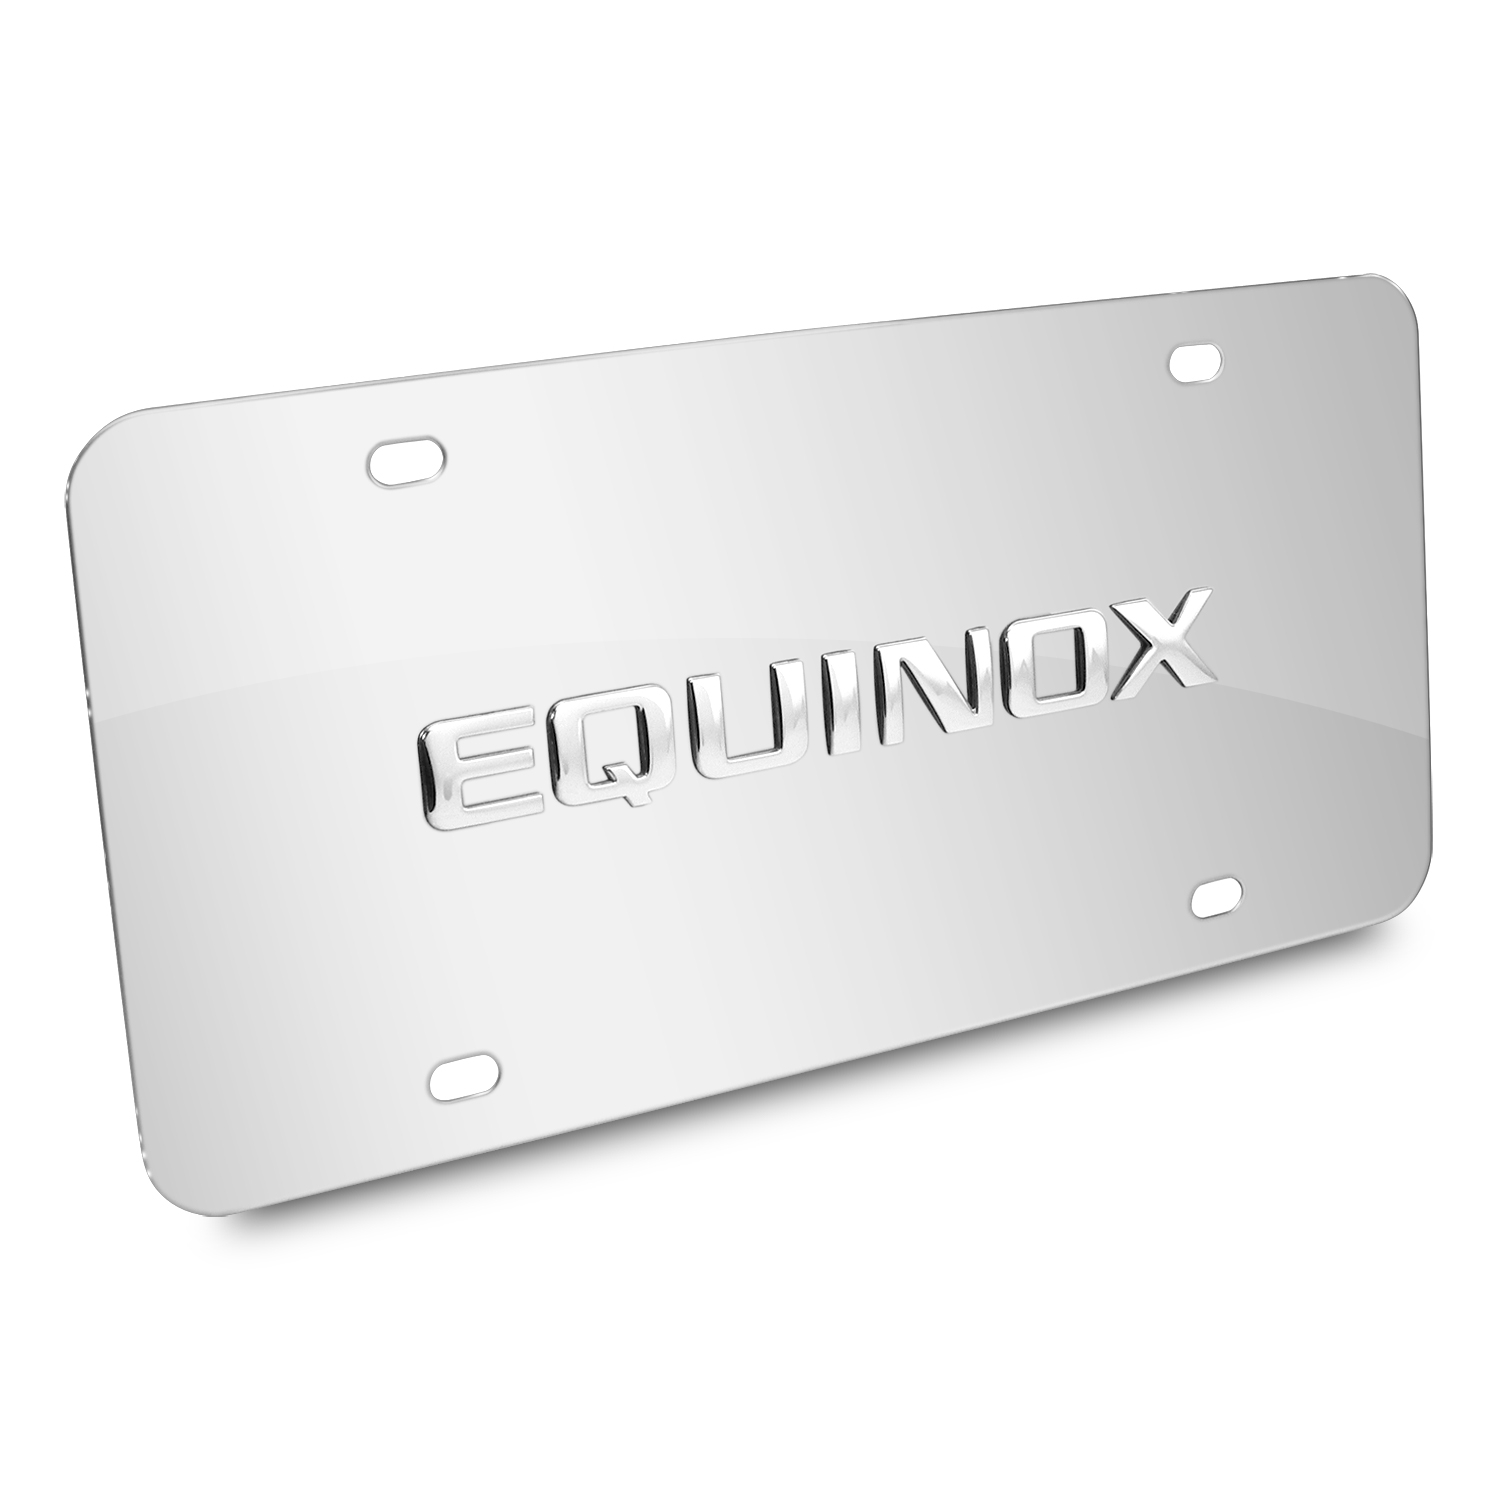 Chevrolet Equinox Nameplate 3D Logo Chrome Stainless Steel License Plate